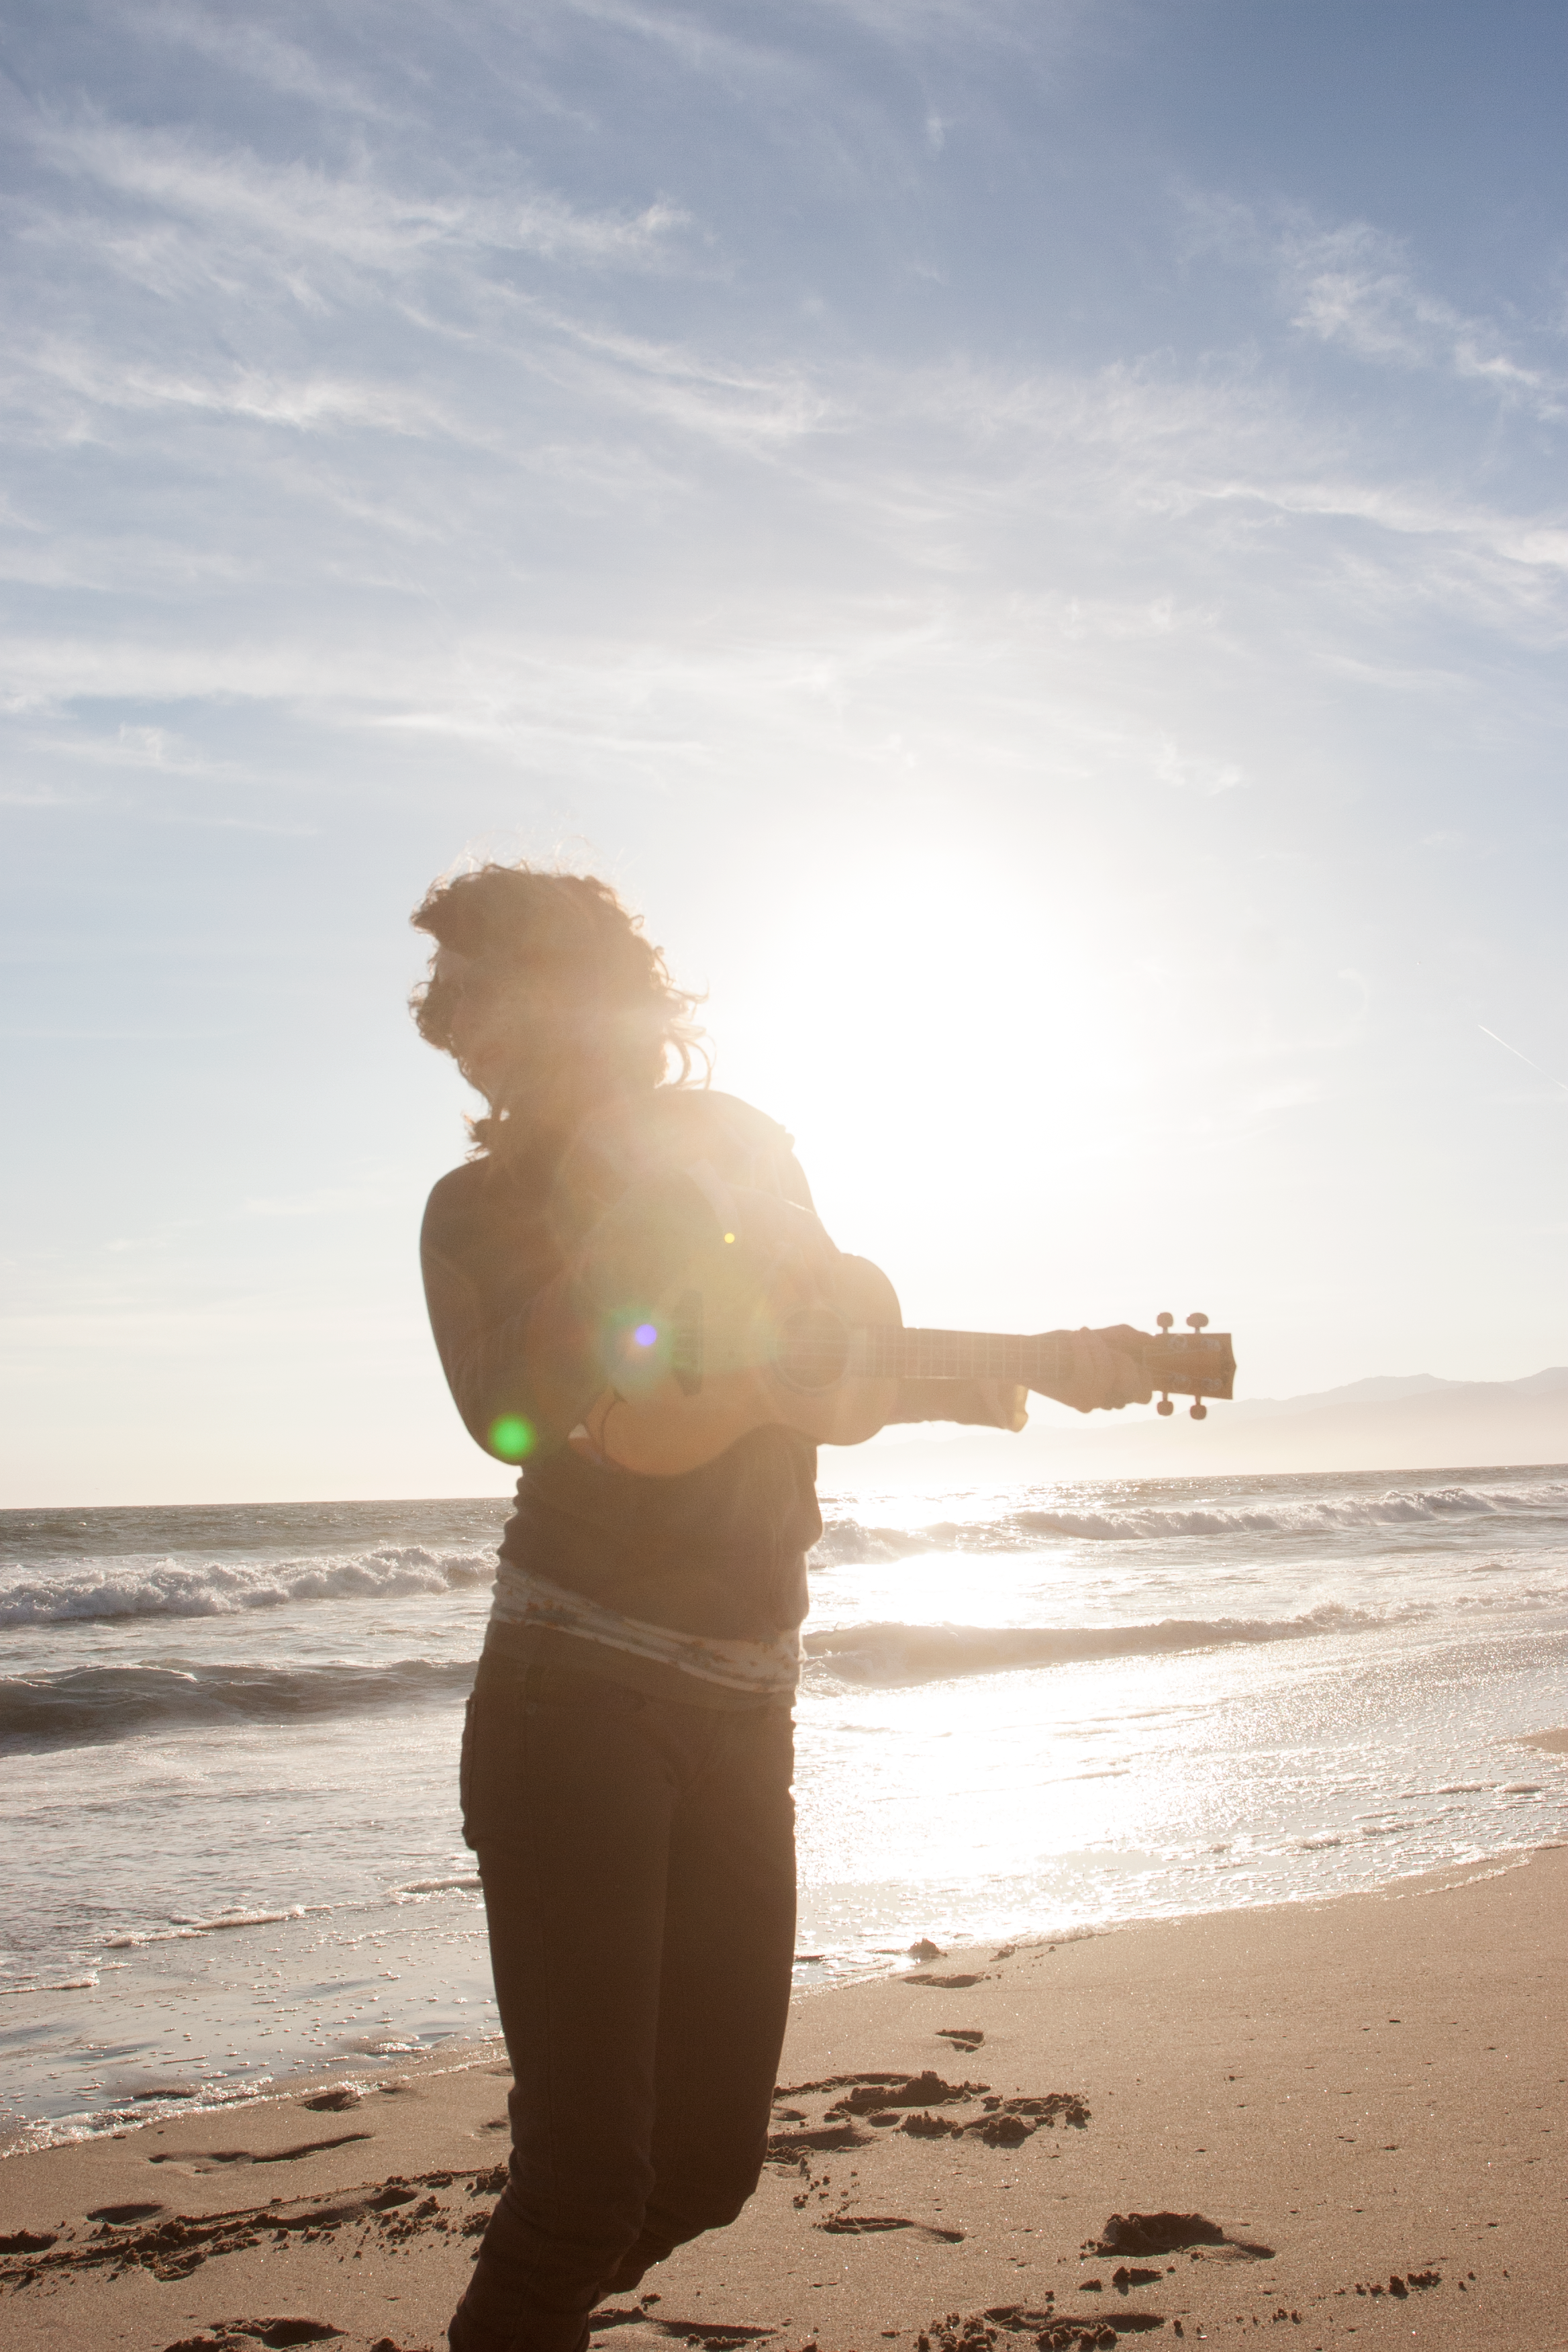 Photo by Cohen on a magical afternoon on Venice Beach in 2012